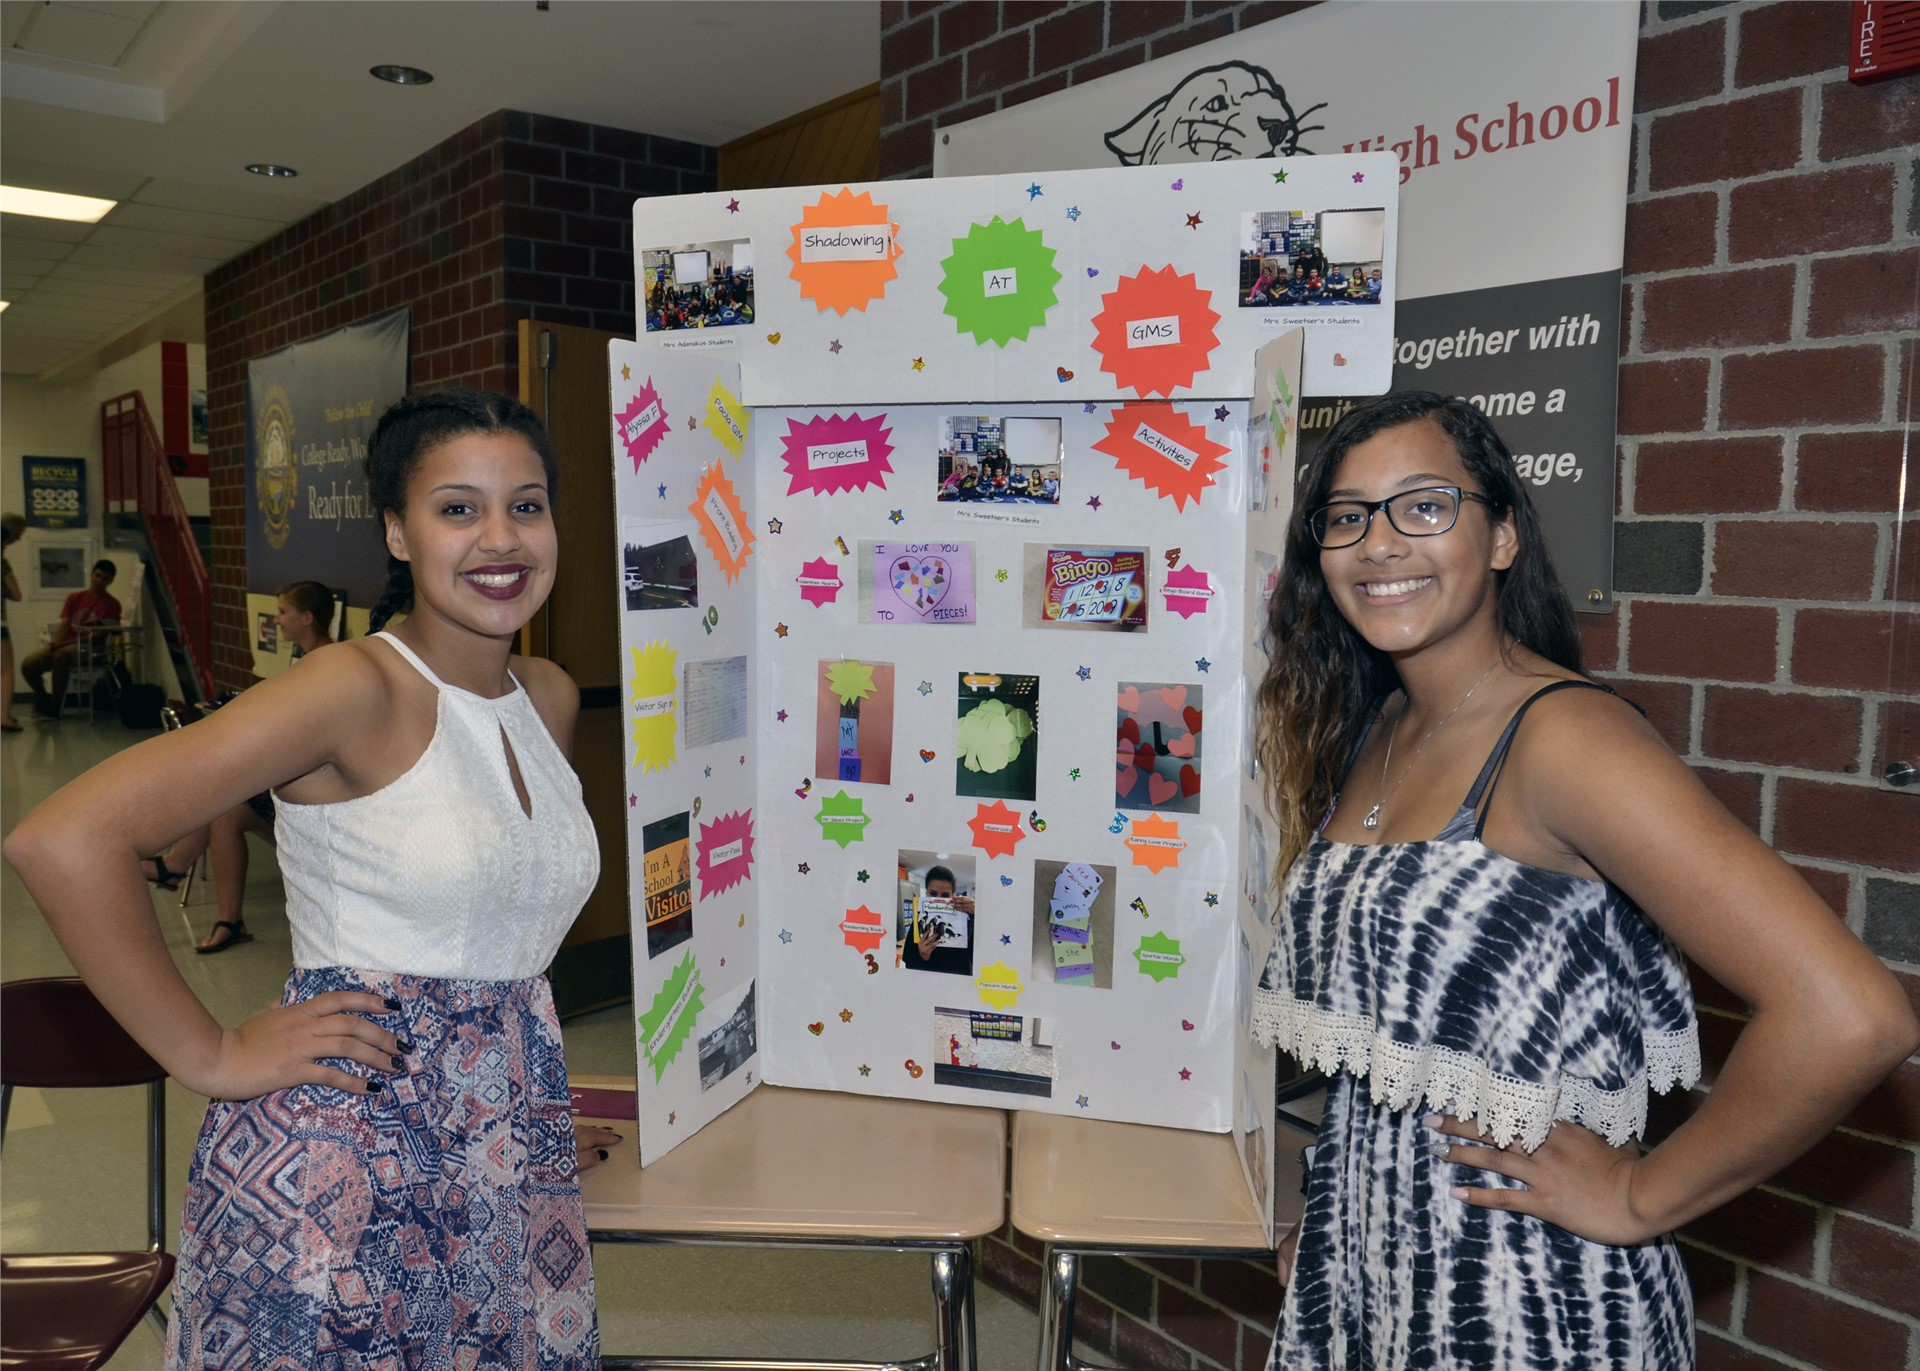 P. Quinones-Martinez and A. Ferreras share their elementary experience.